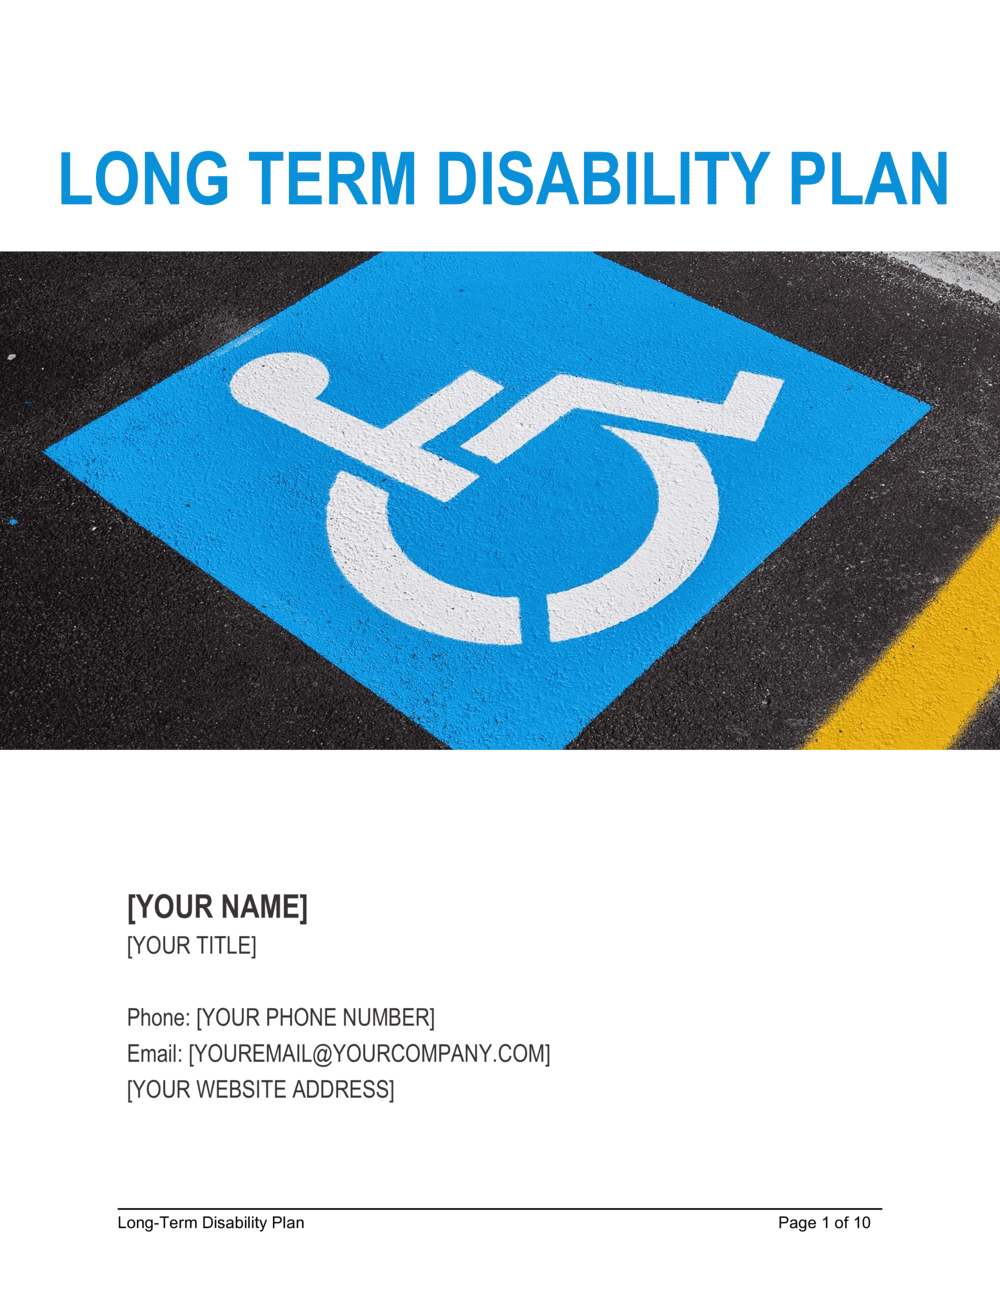 Business-in-a-Box's Disability Plan Long-Term Template